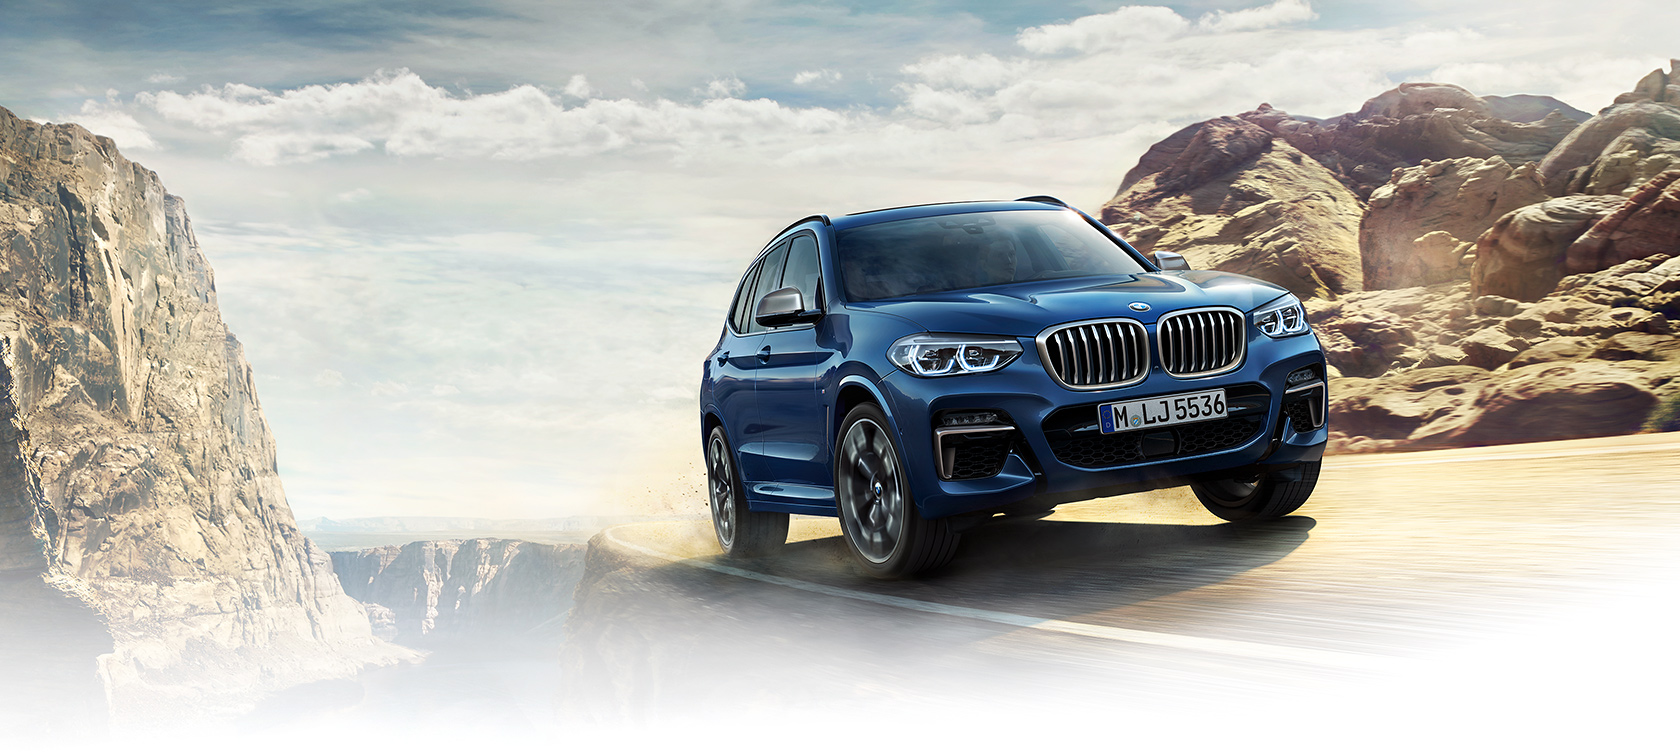 BMW X Series X3: bright blue risky turn on mountaintop.